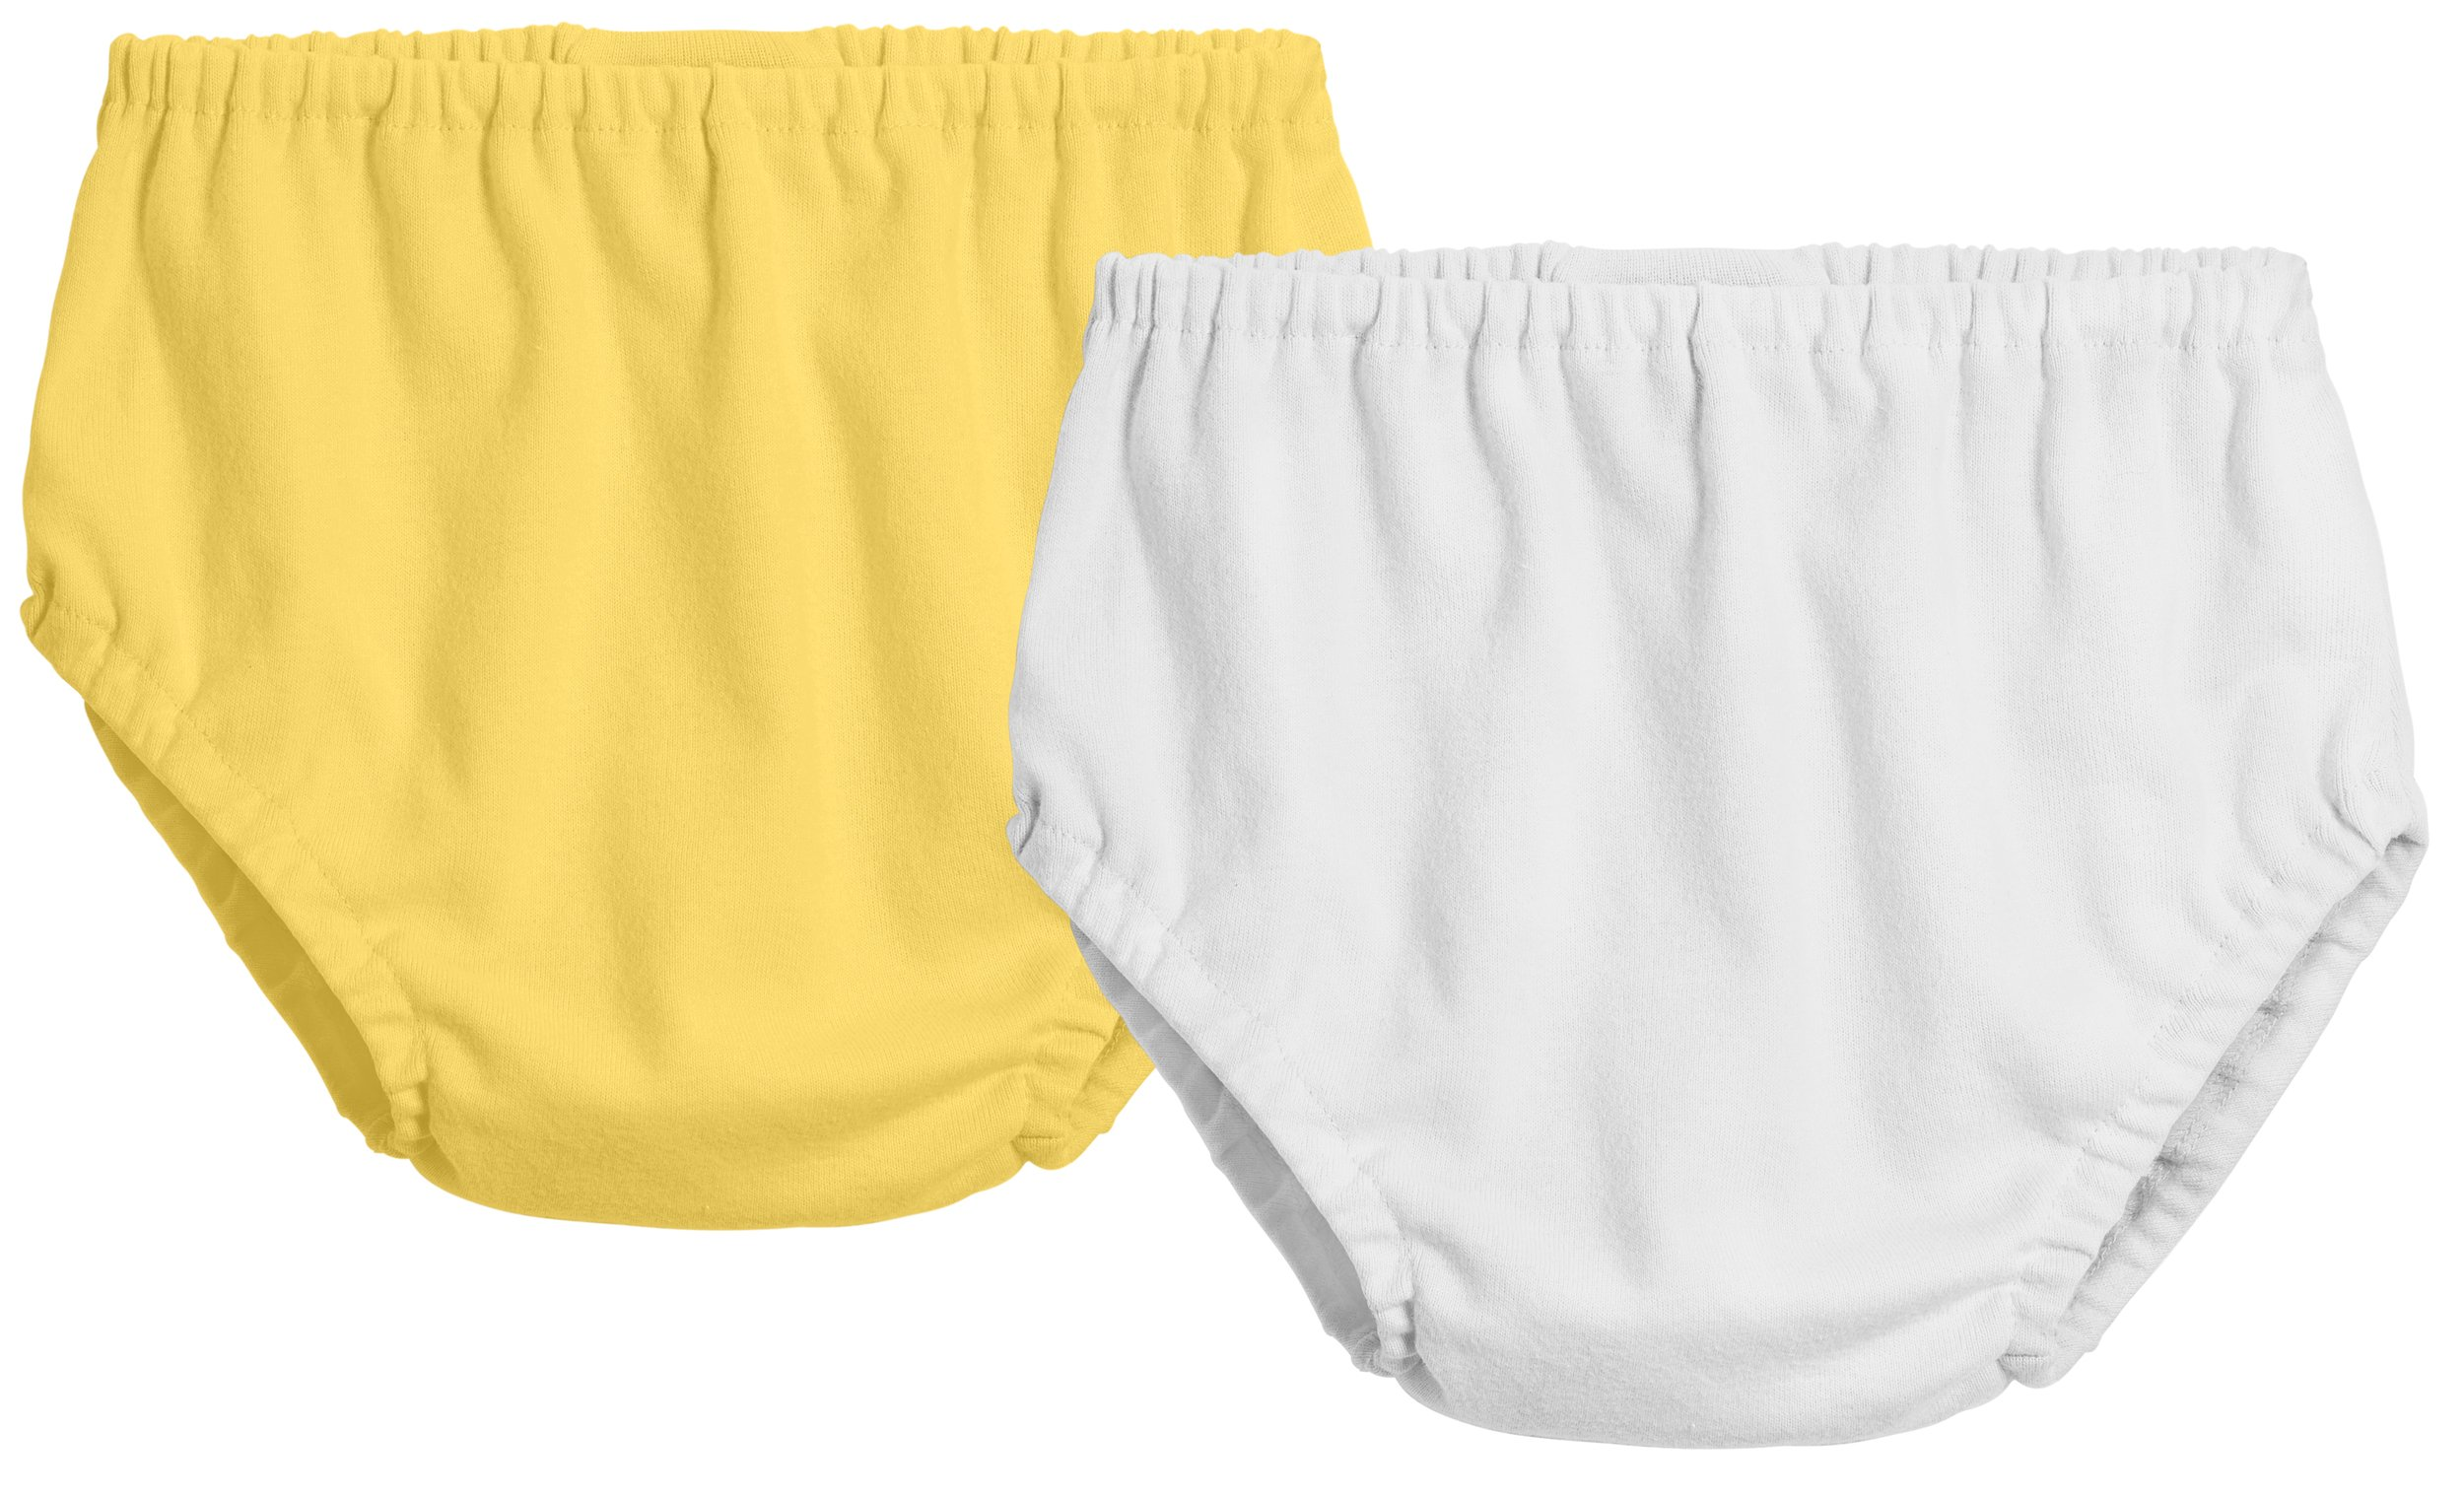 City Threads 2-Pack Baby Girls' and Baby Boys' Unisex Diaper Covers Bloomers Soft Cotton, White/Yellow, 2T